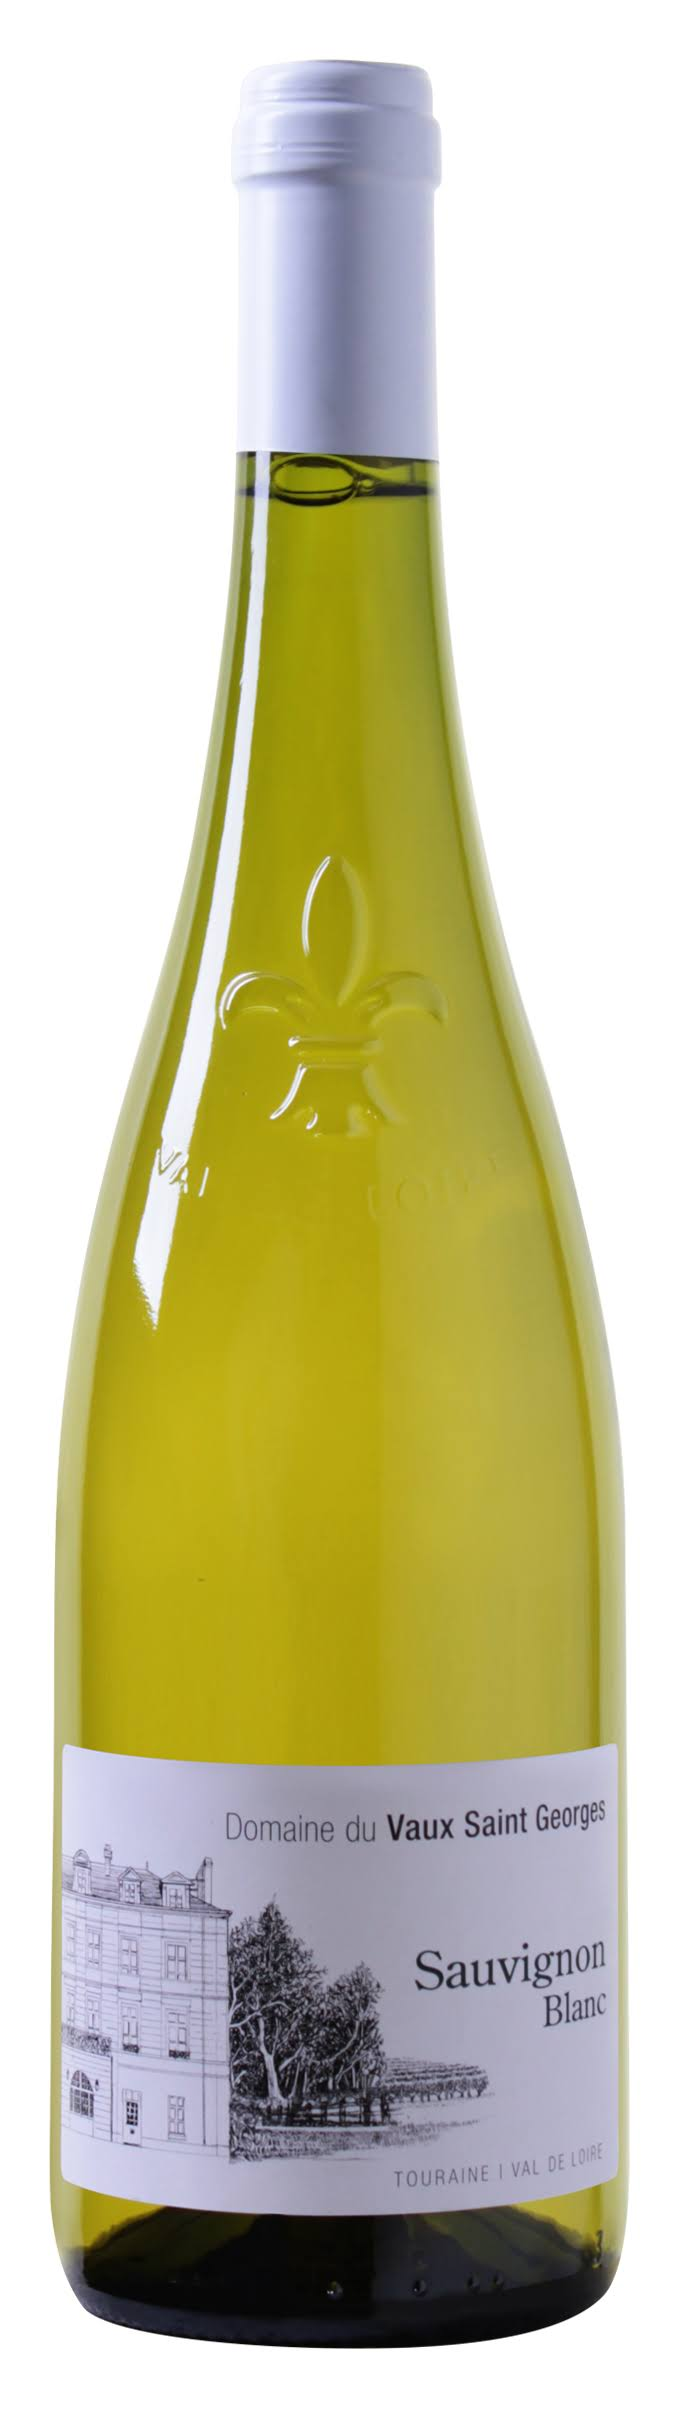 Wine > France Guy Allion Touraine Sauvignon Blanc 750ml